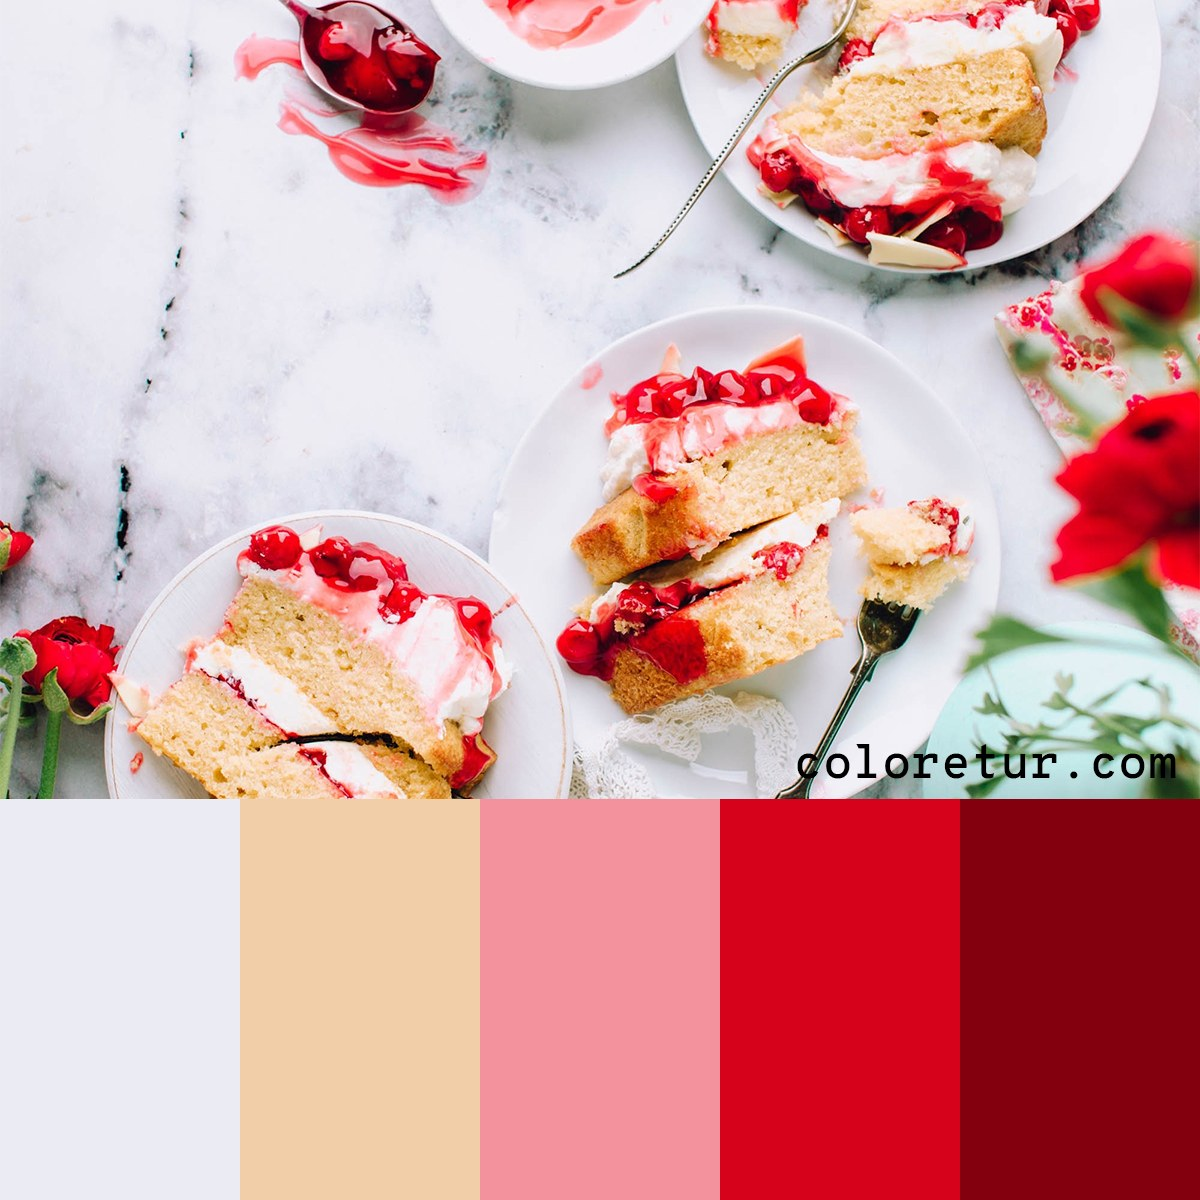 Vibrant colors selected from a cherry shortcake to make a fresh palette.